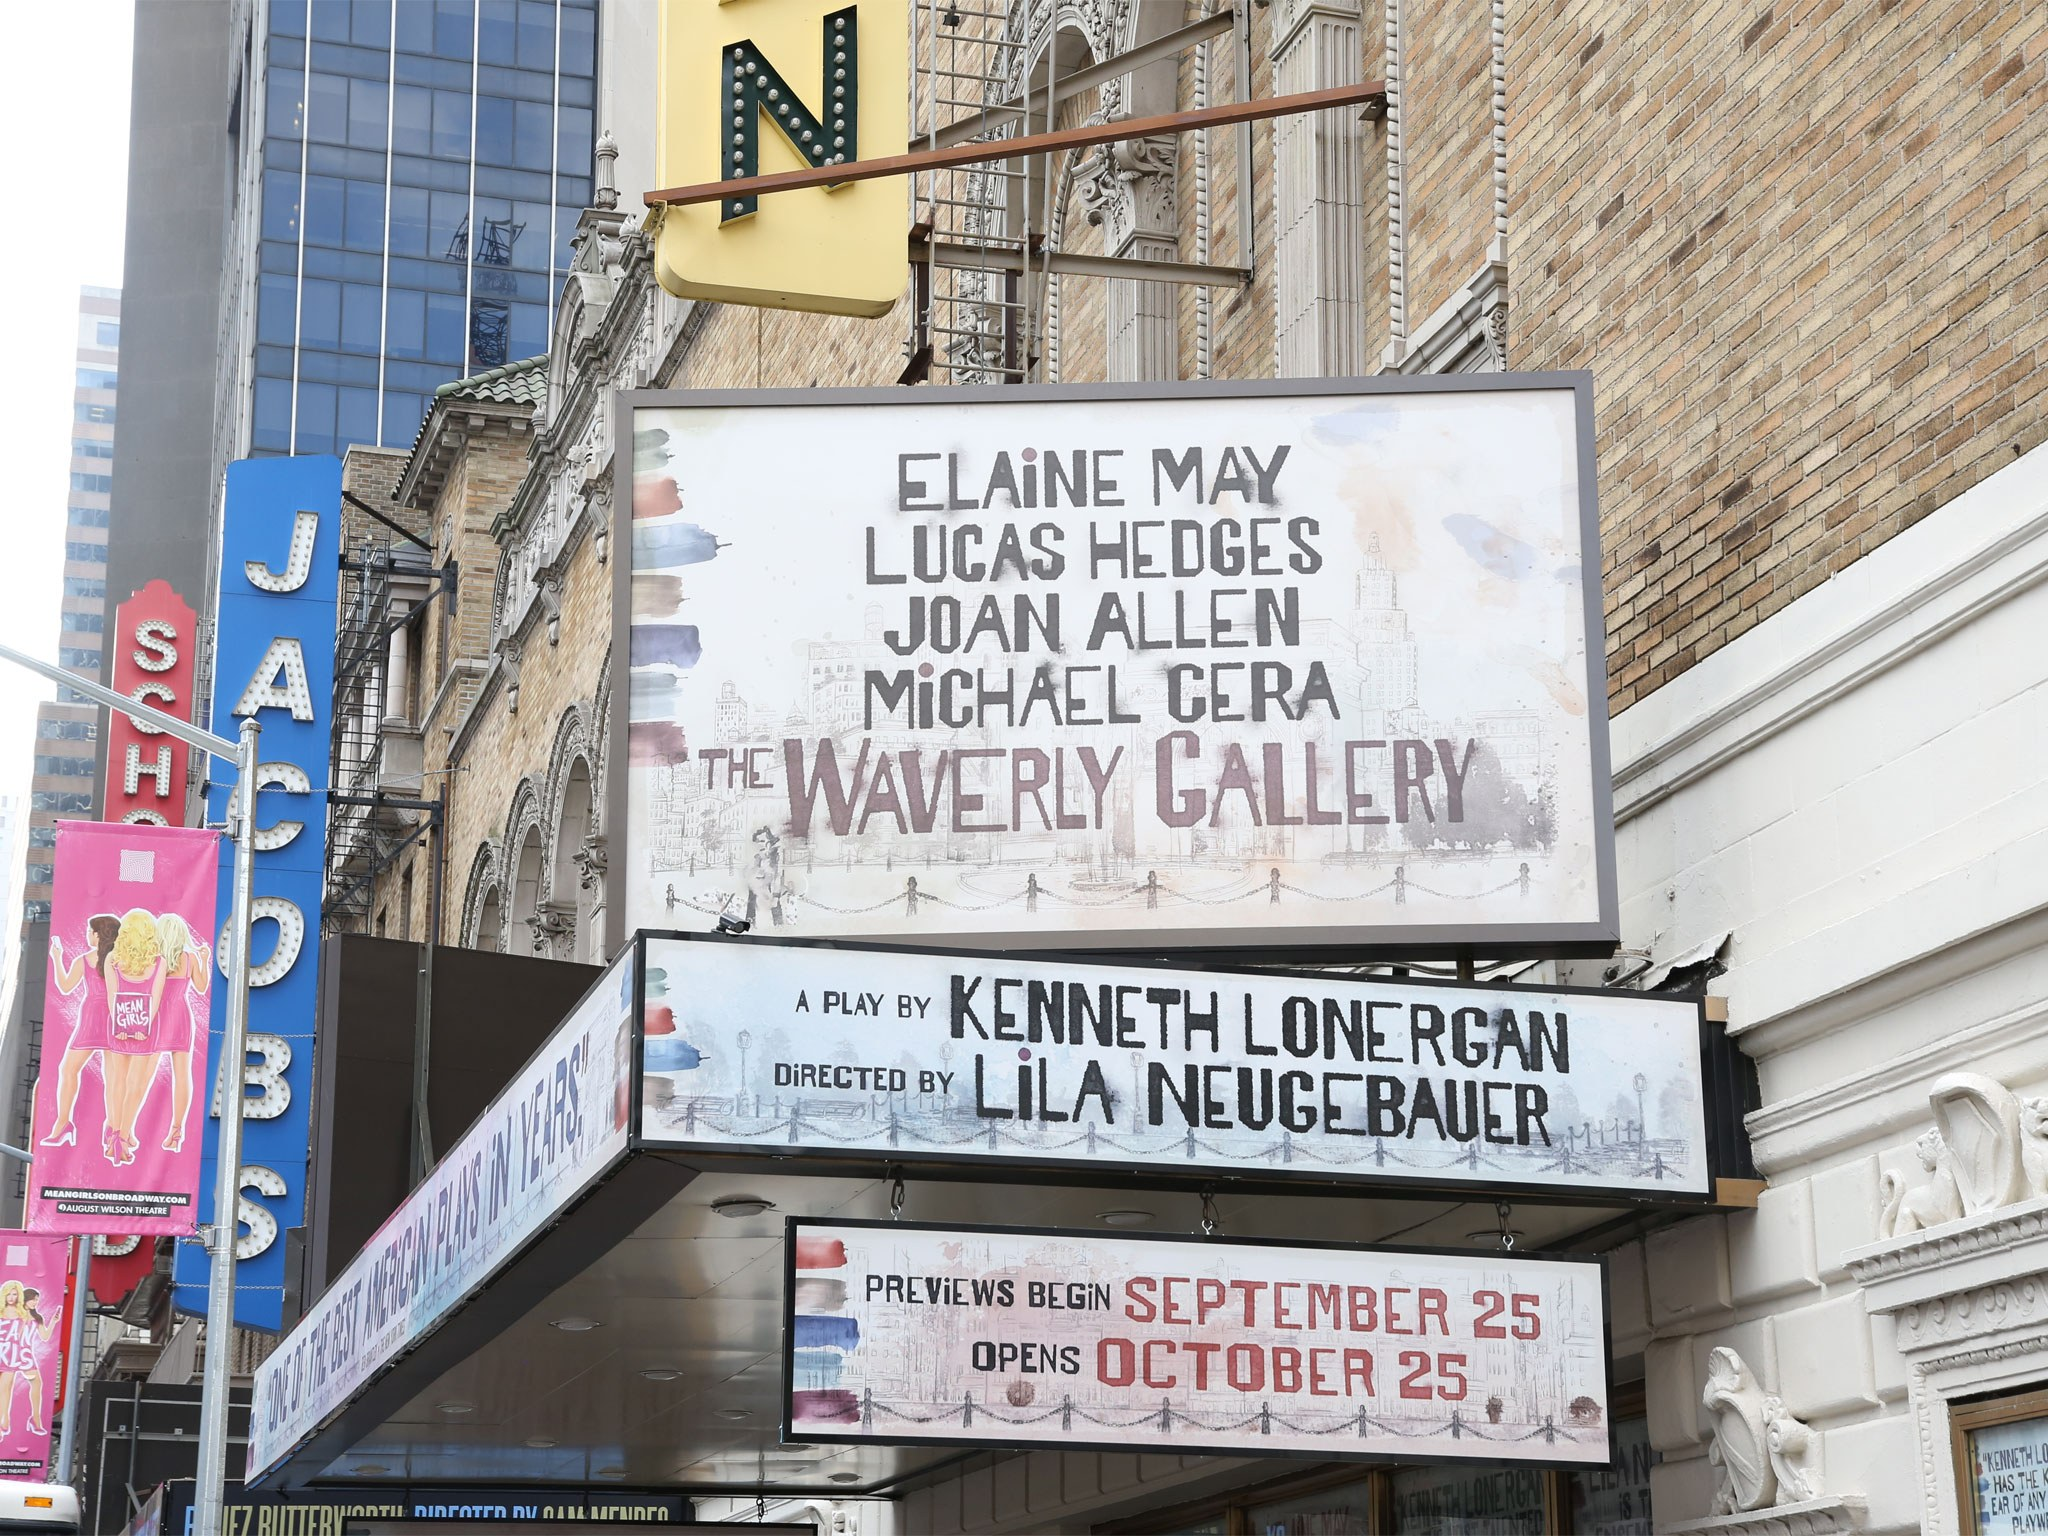 The Waverly Gallery Marquee